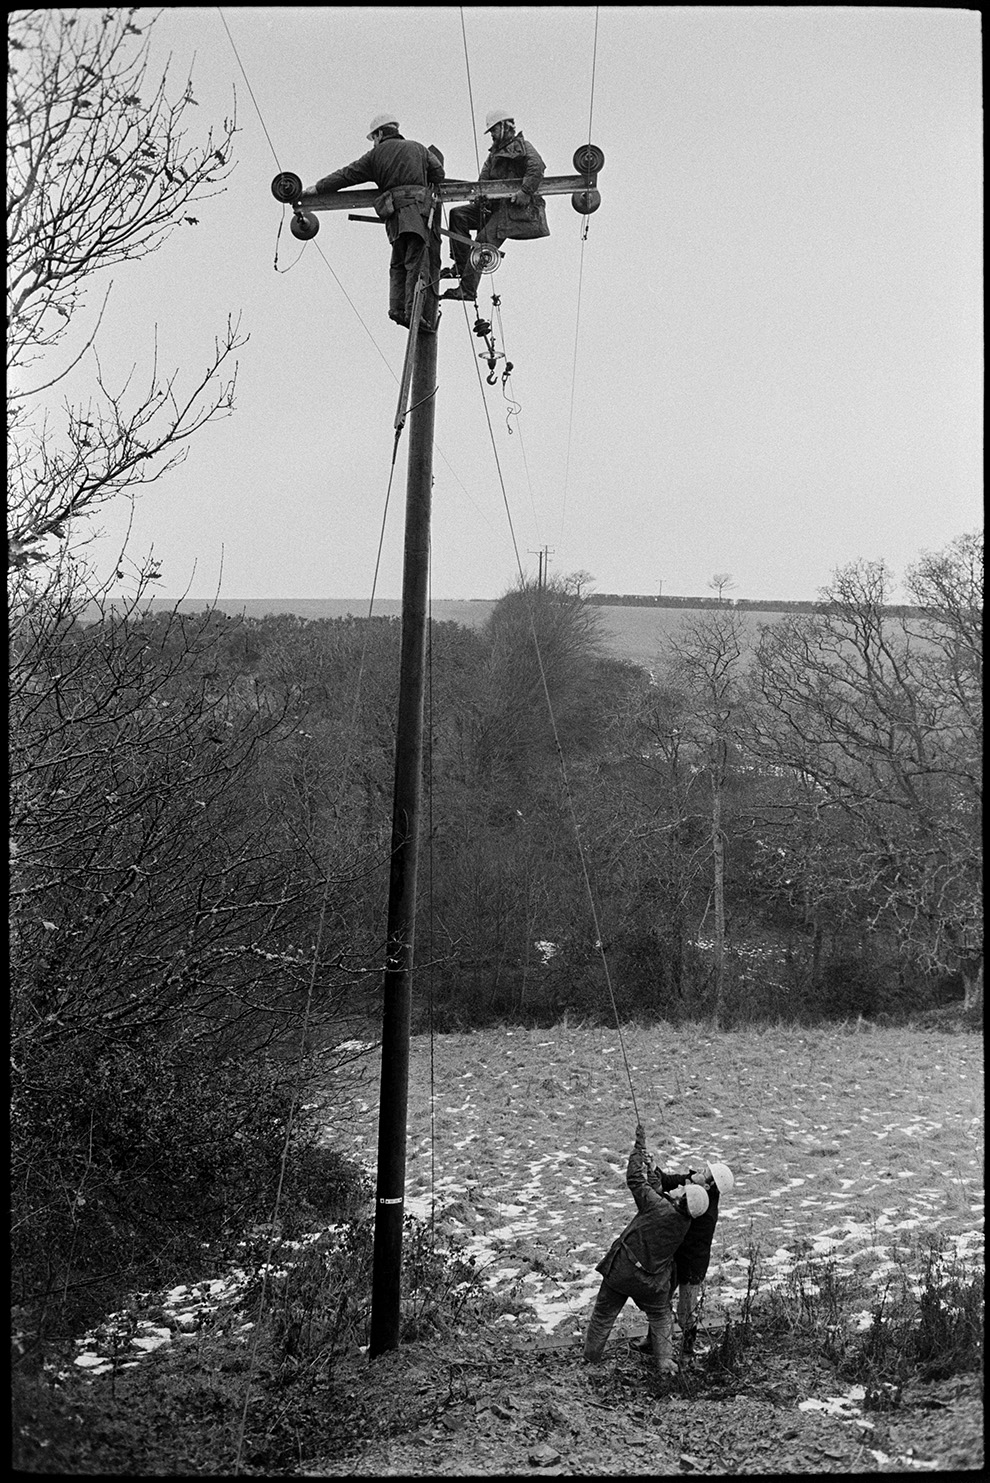 Electricity Board engineers putting up new power cables to village, Dolton,  2 January 1979.